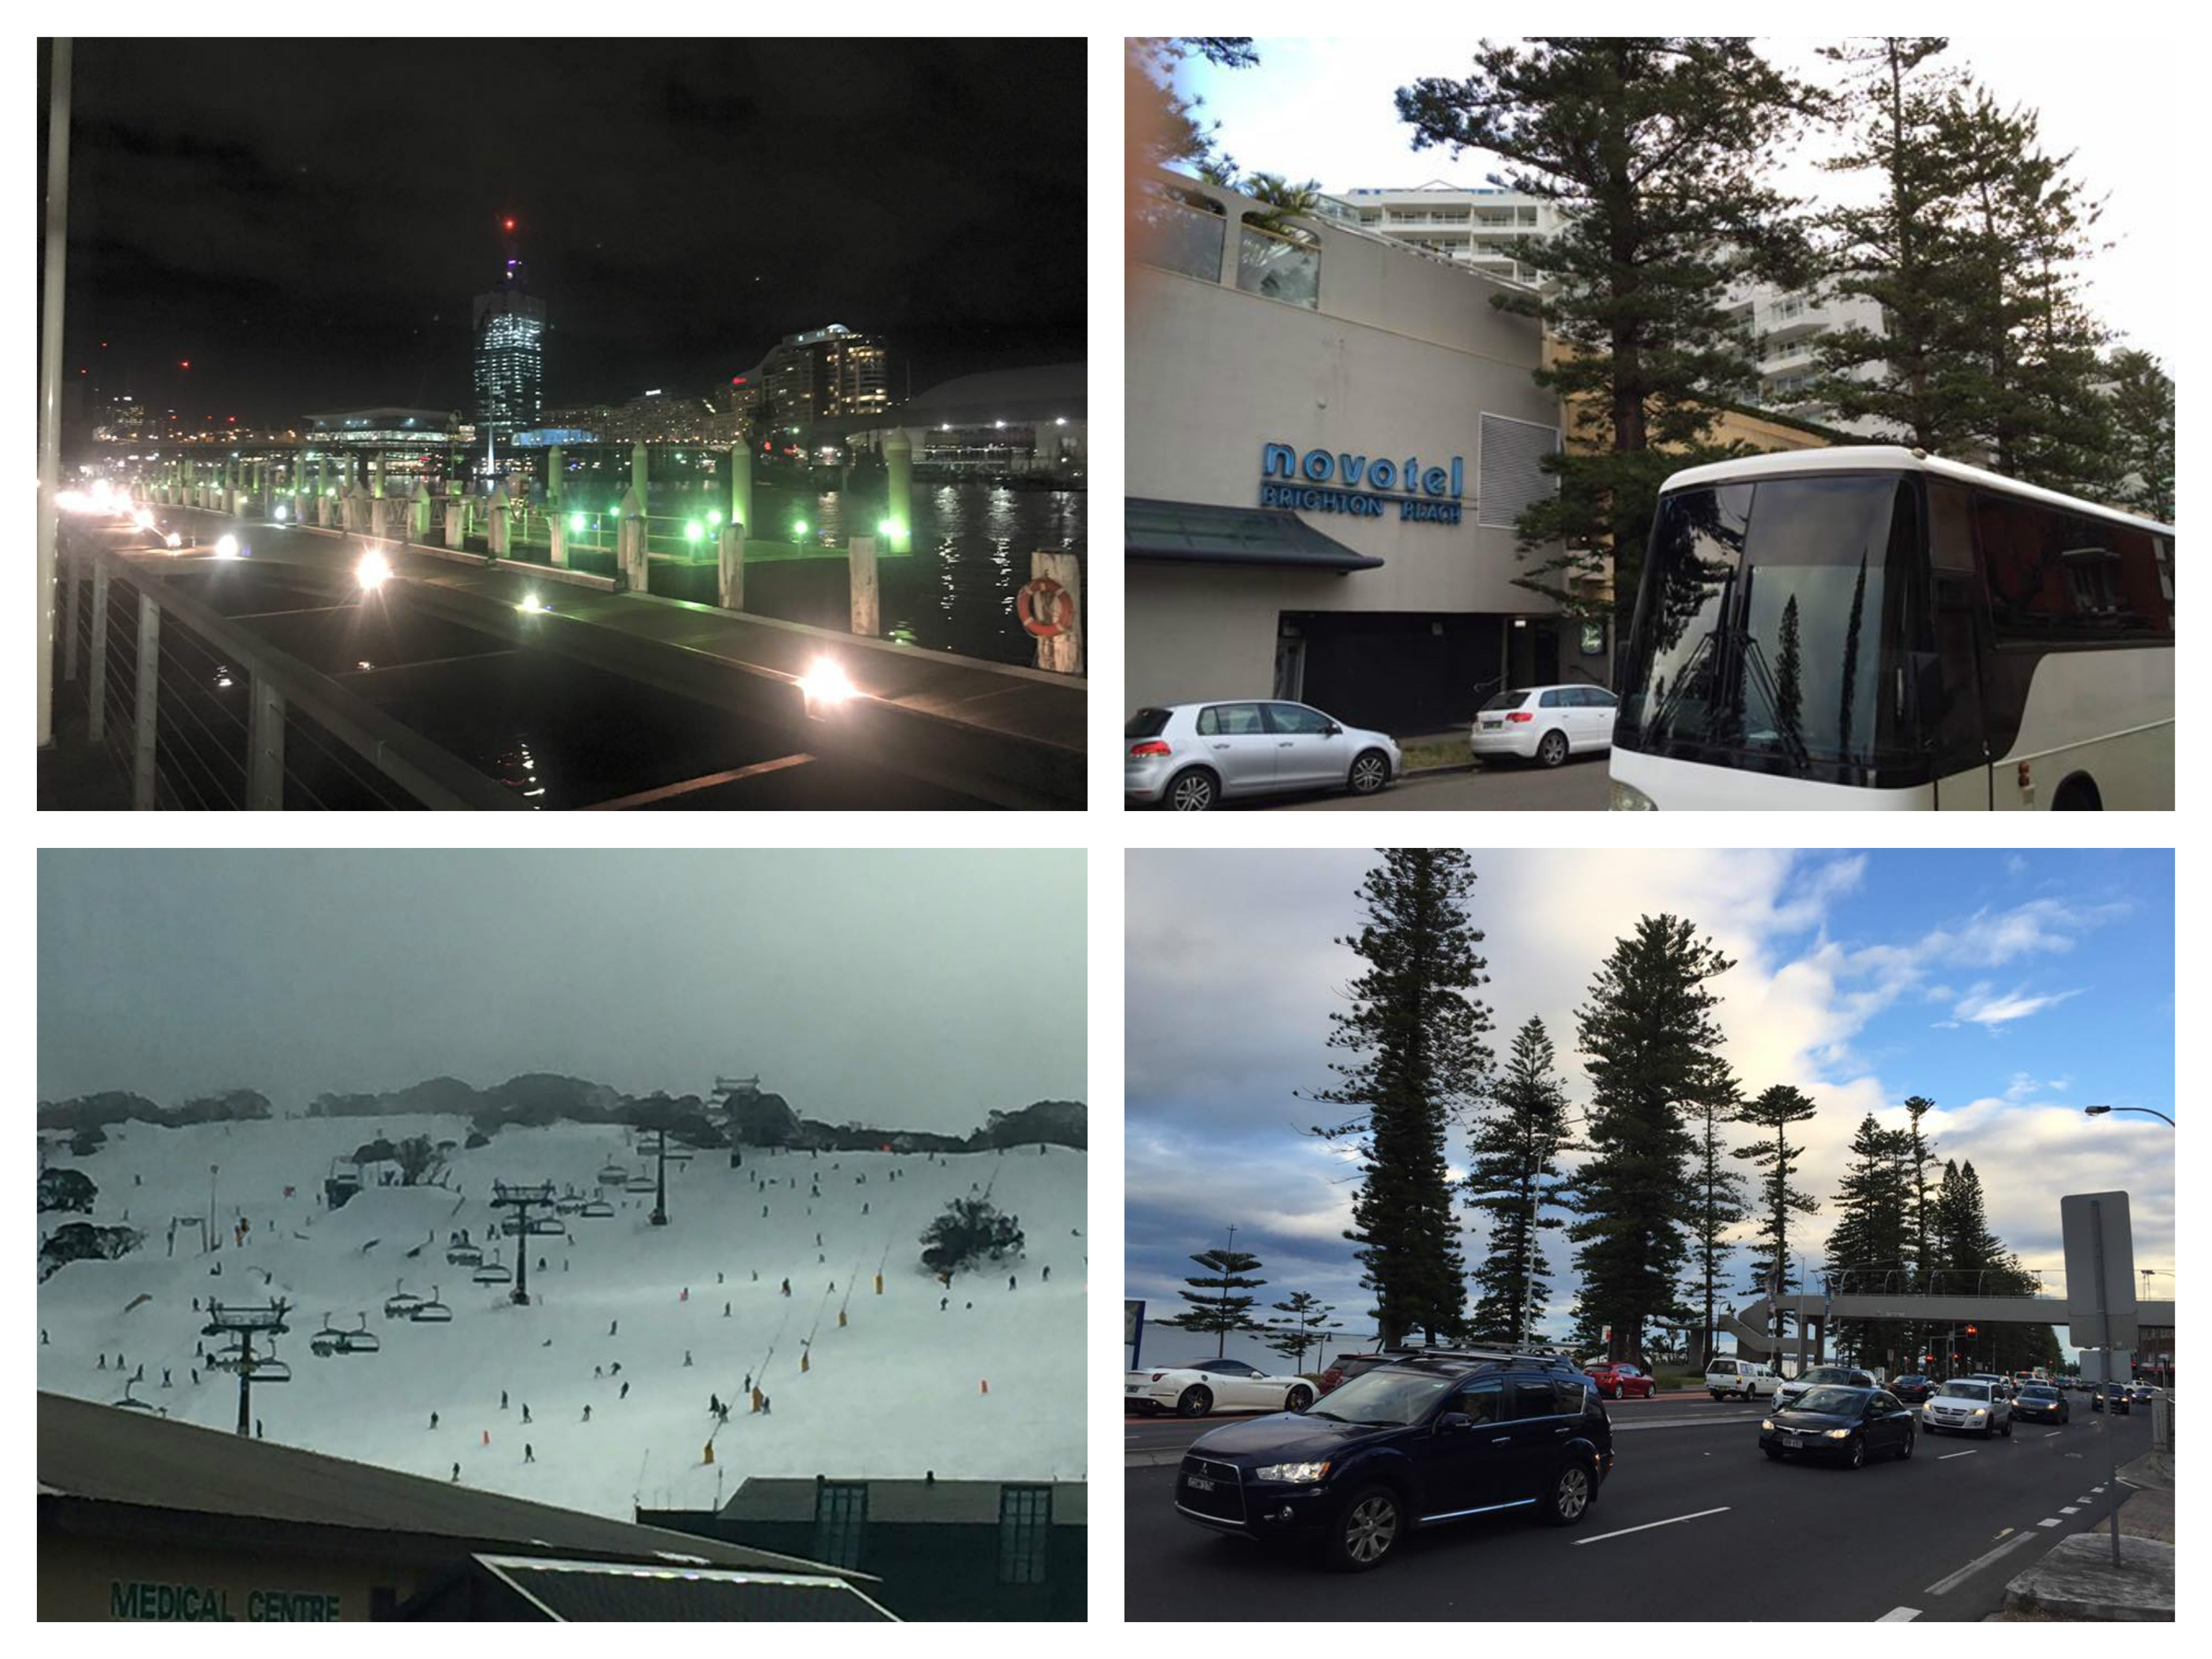 https://grandtouring.com.au/wp-content/uploads/2016/08/Gallery-Collage-02.jpg